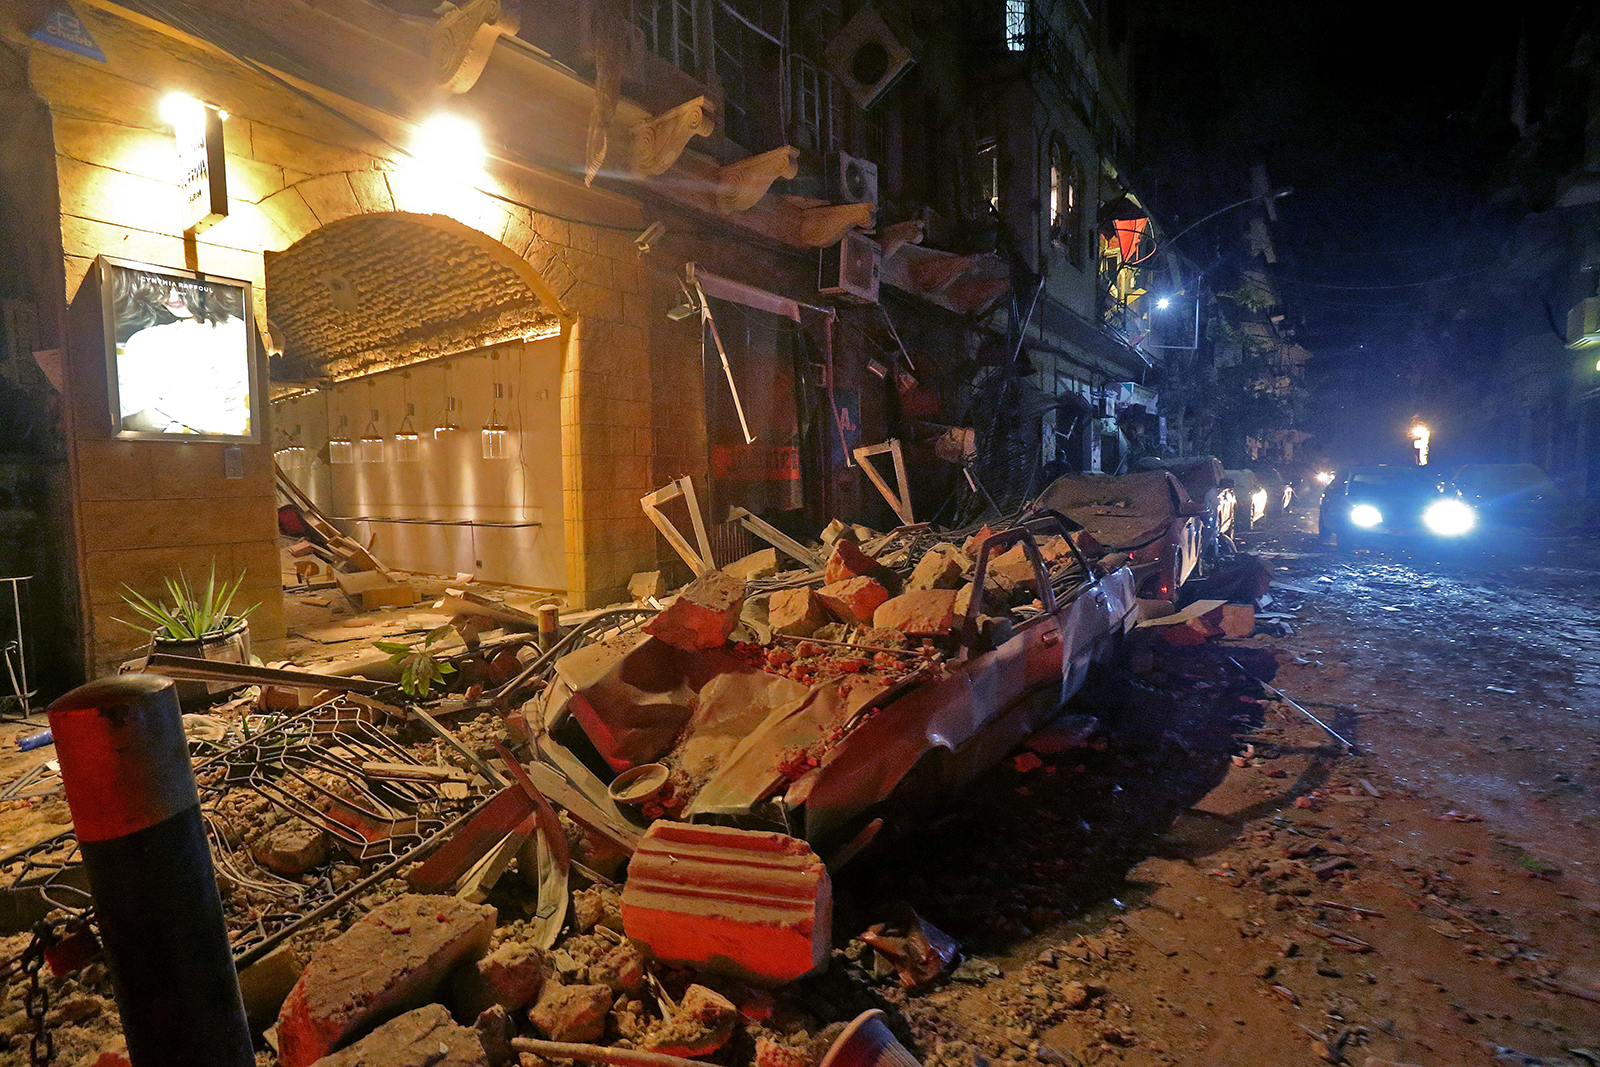 """Deadly explosion in Beirut shocks the world, Trump said it """"looks like a terrible attack"""""""